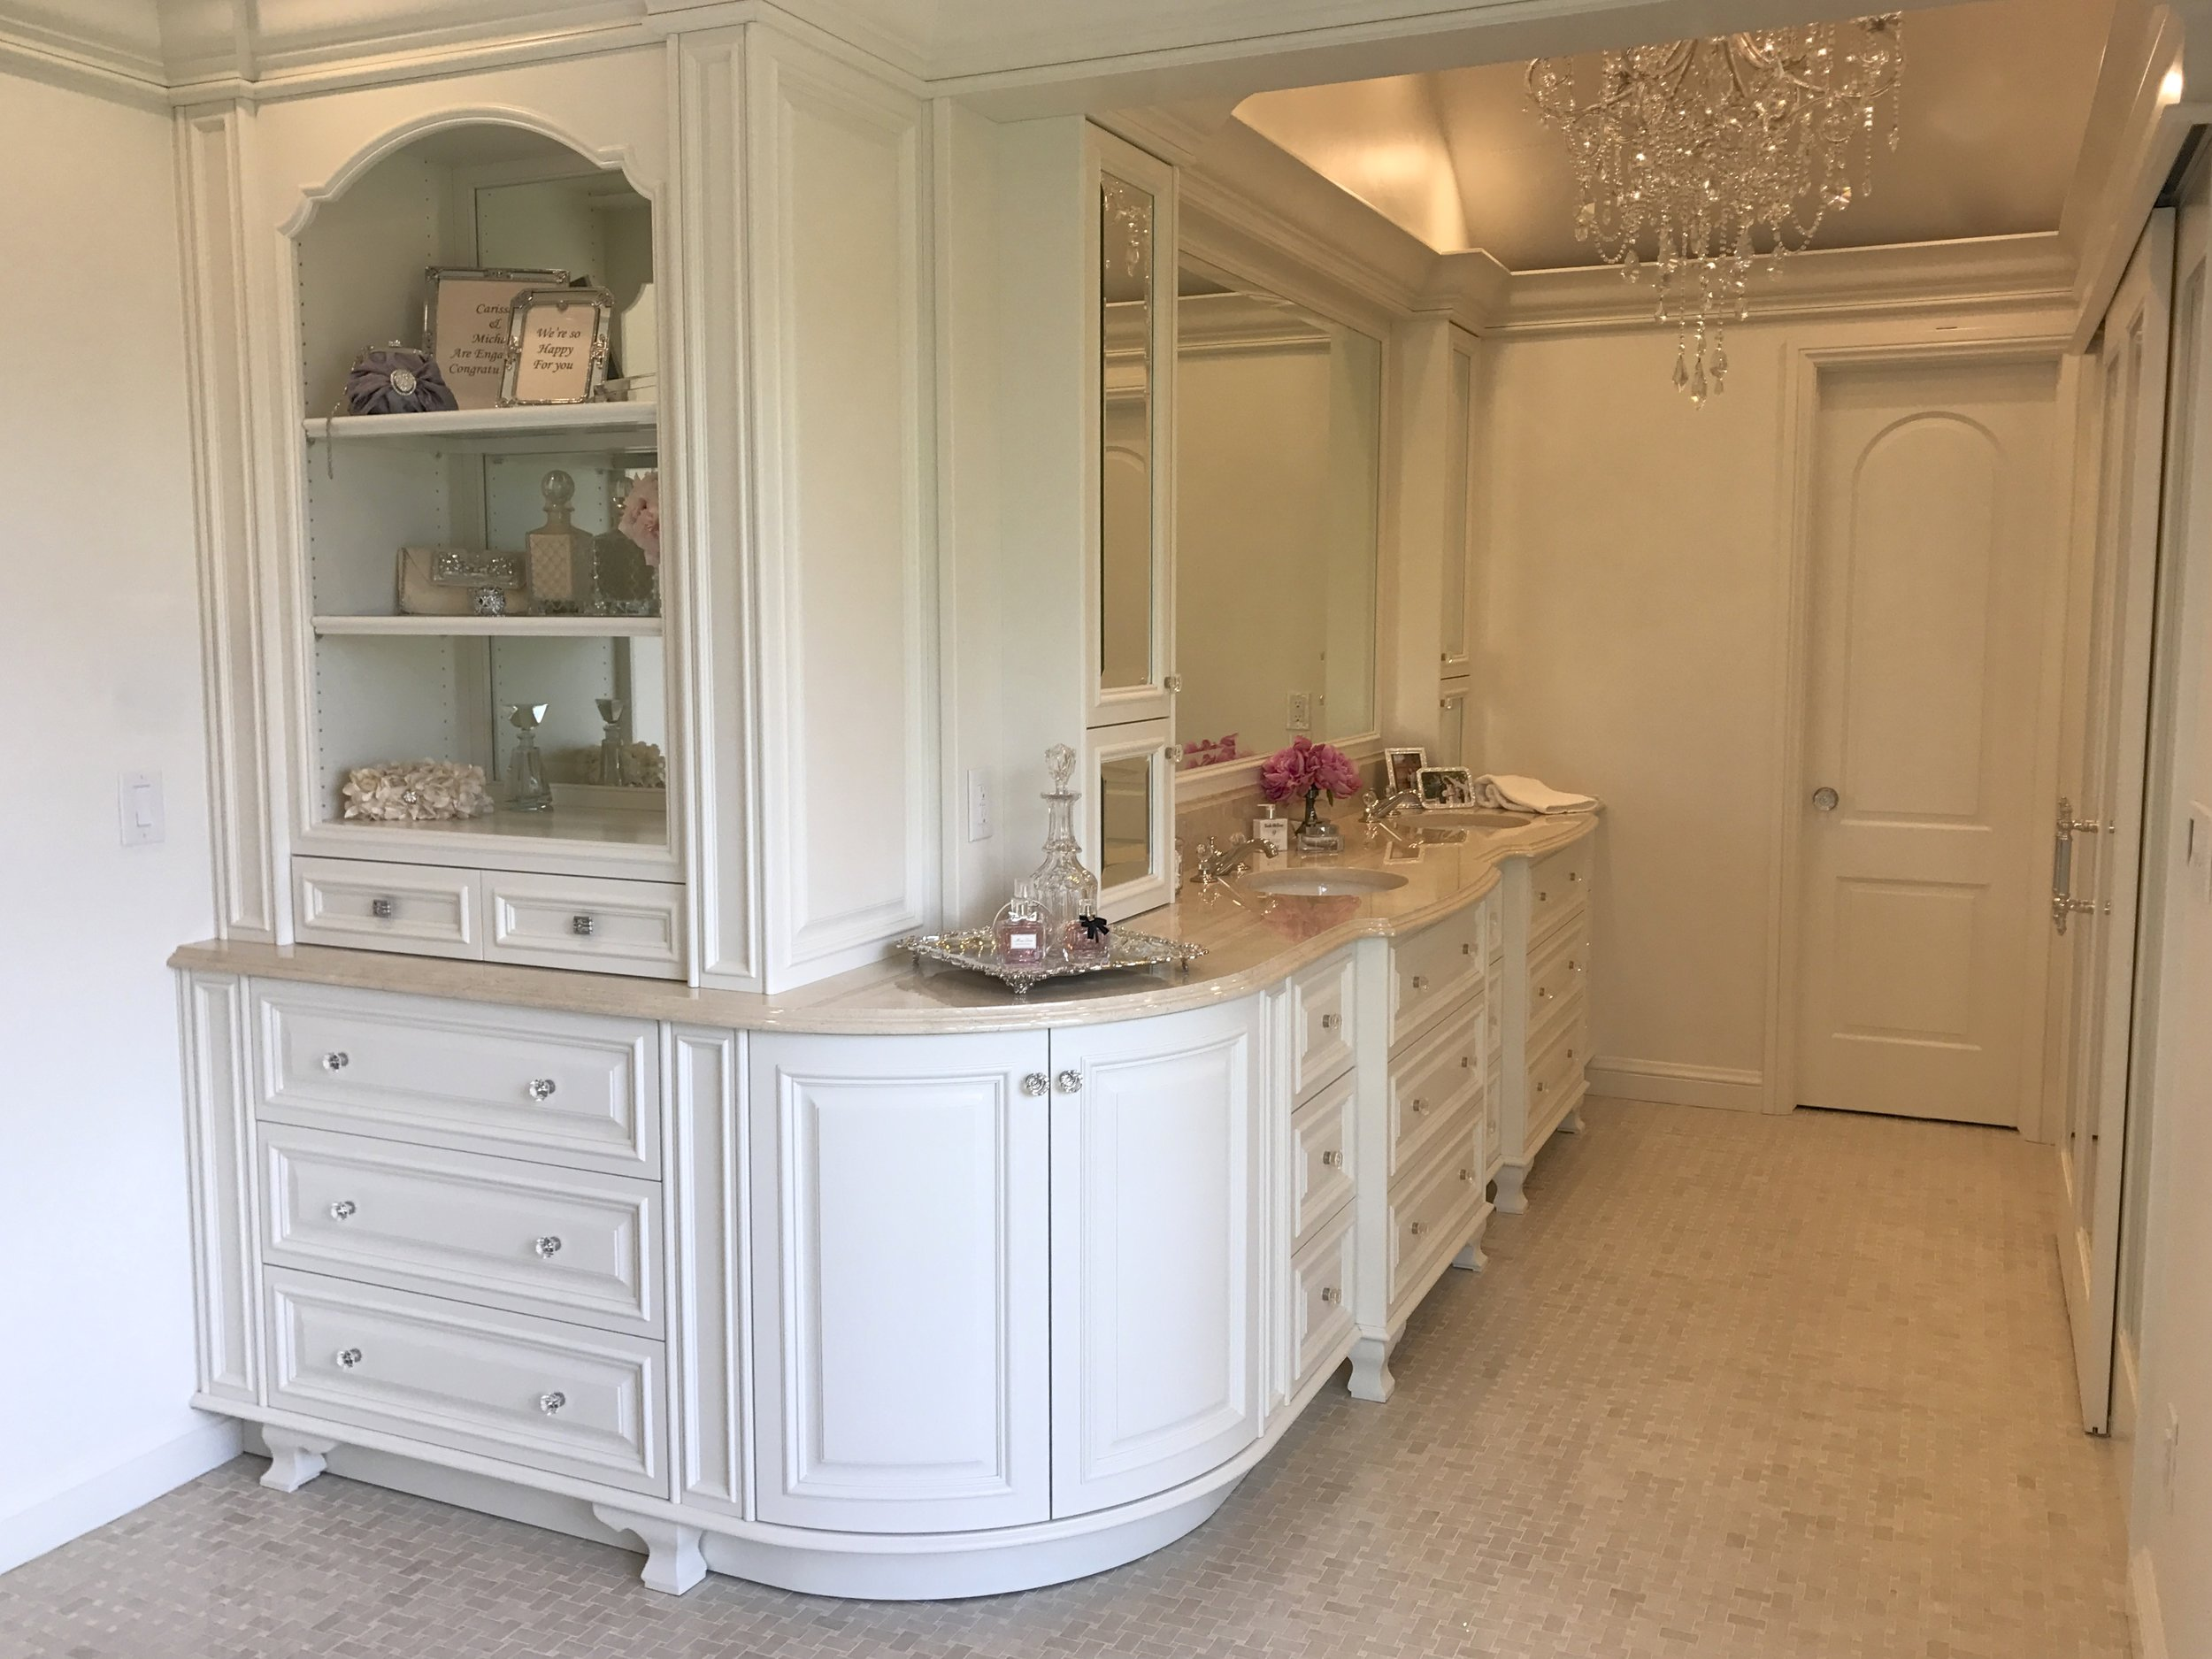 This rounded cabinet used to be a drywall corner which blocked  the light from the windows.  By removing this rounded wall cabinet storage, countertop space and light were all gained. In the before below you can see that a linen closet was also replaced with cabinetry opening up the space.